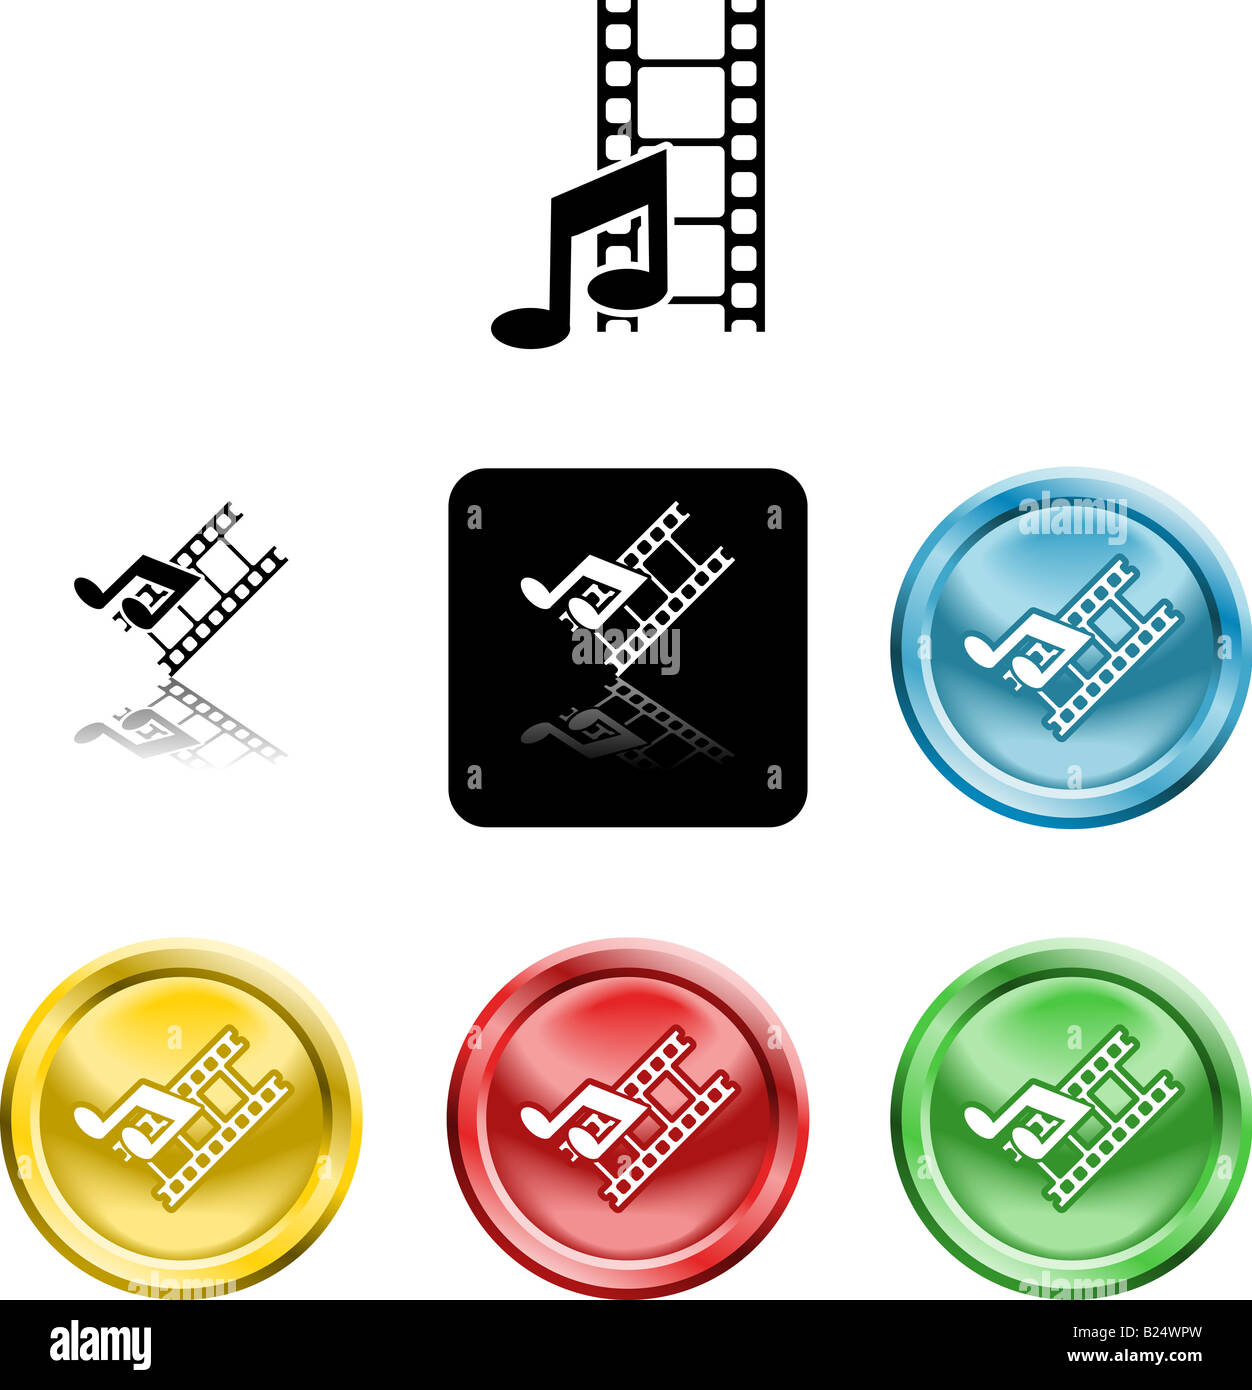 Several versions of an icon symbol of stylised music note and movie film - Stock Image